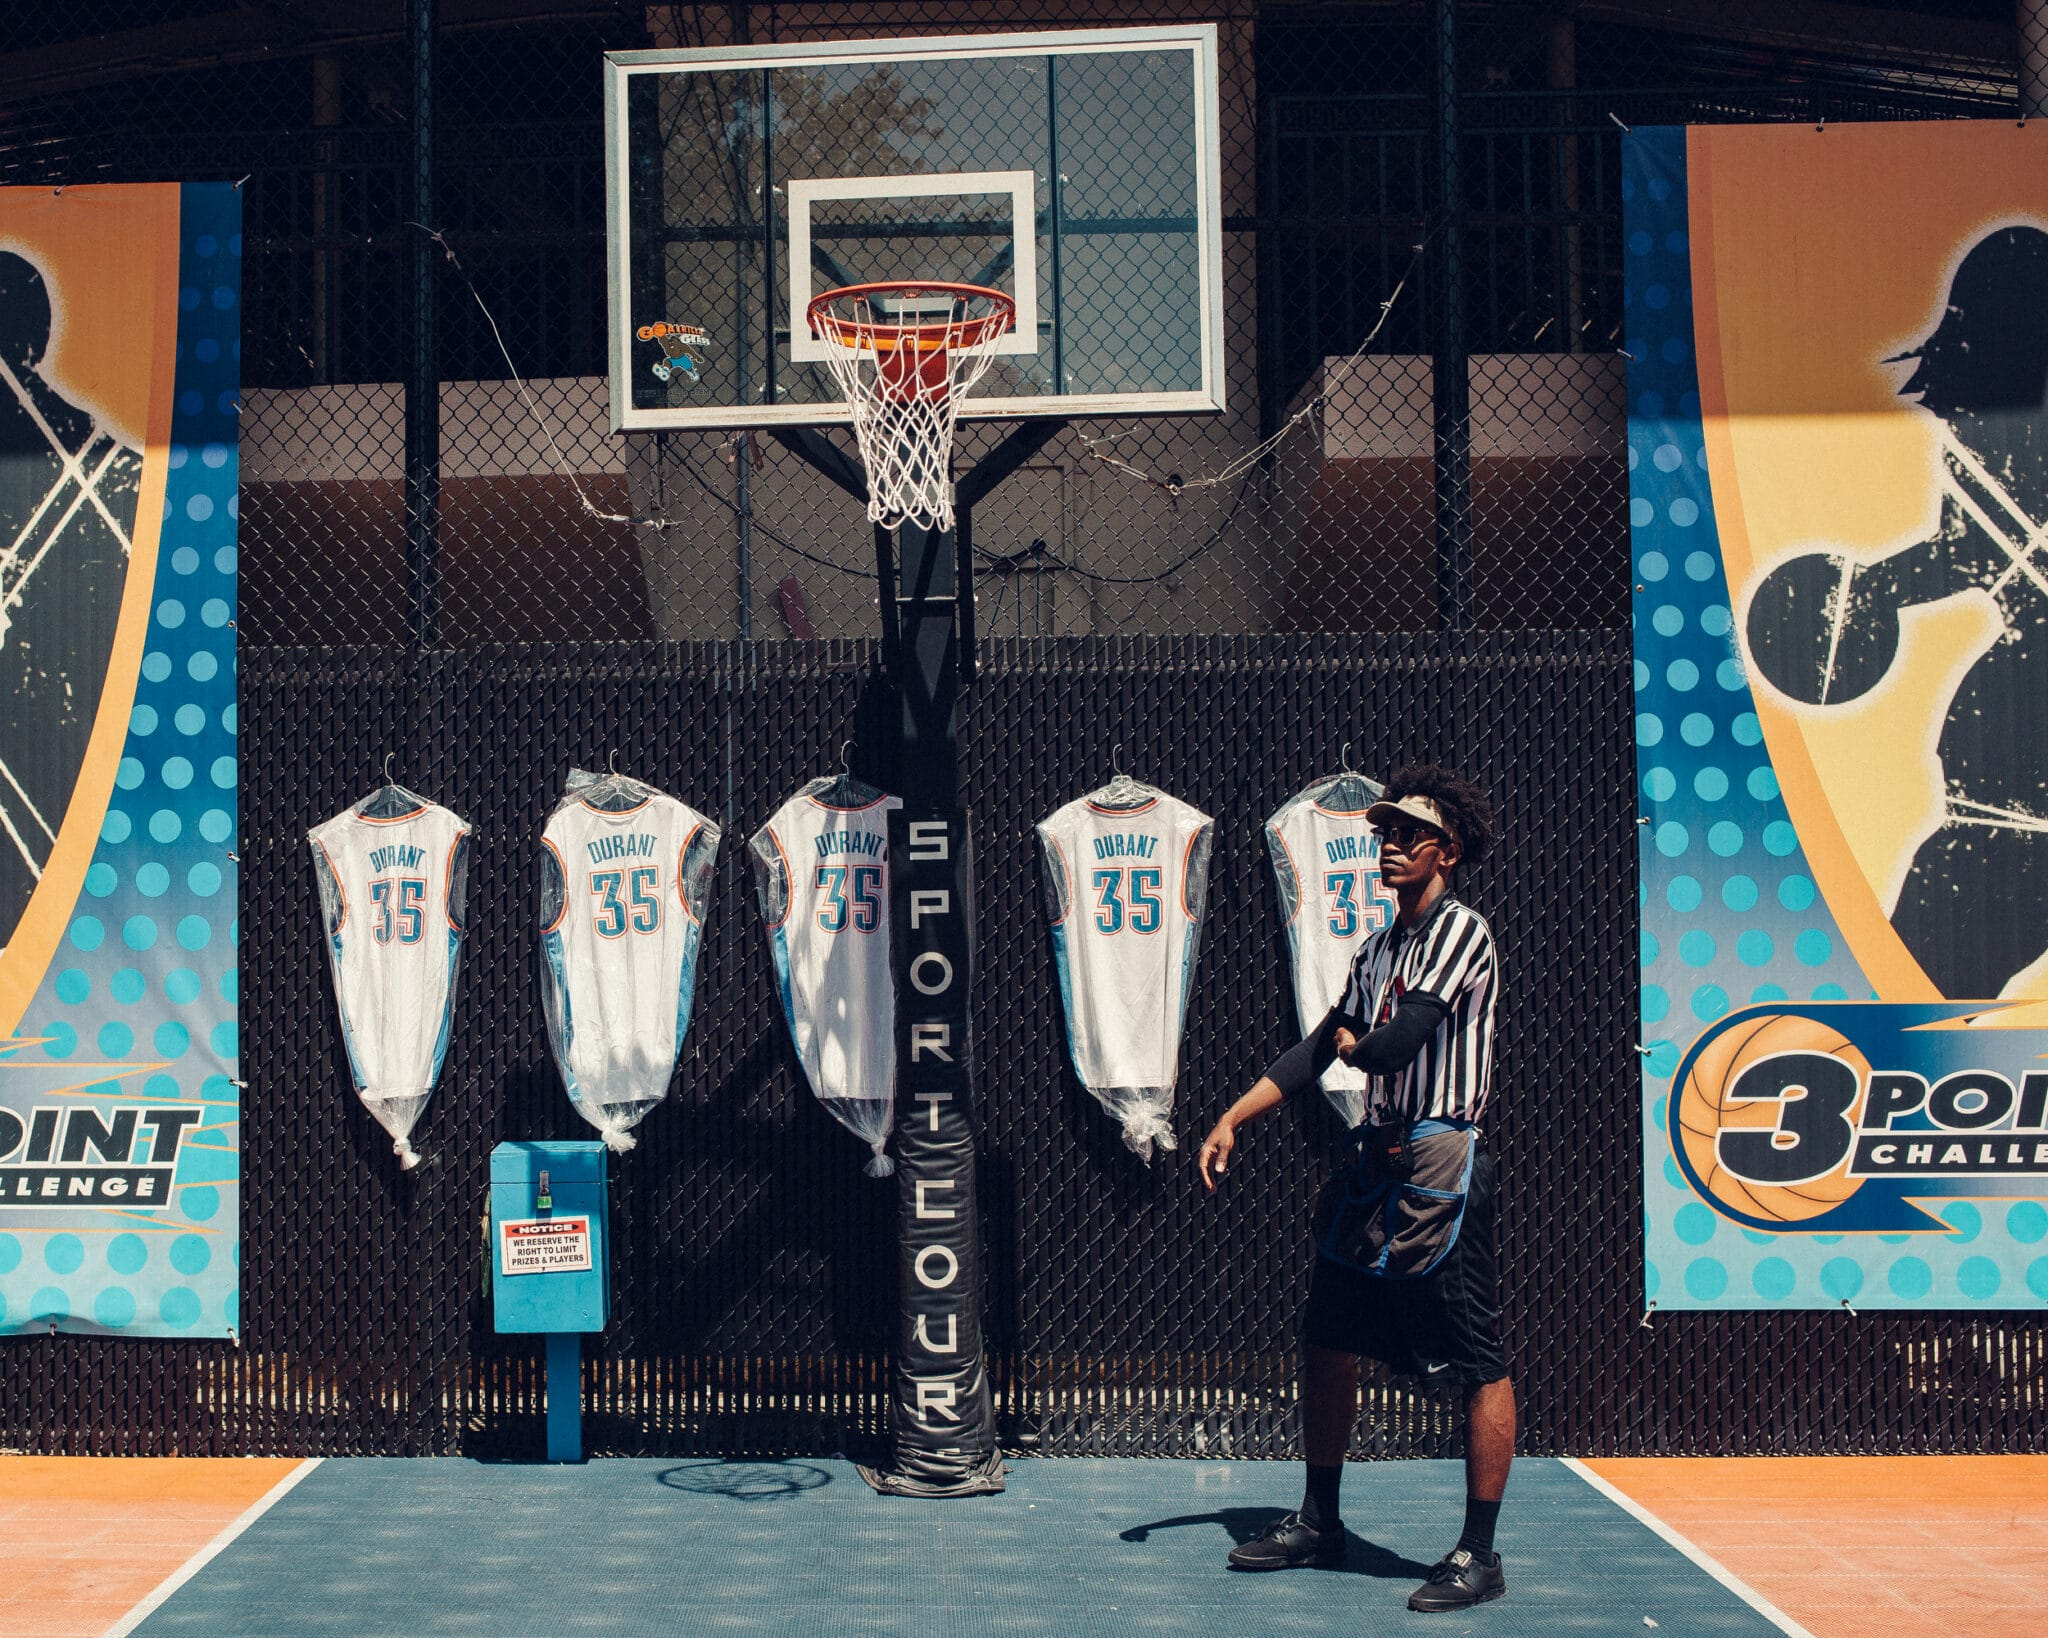 Kevin Durant Day in the Life for Nike. (Photo by Jared Soares)